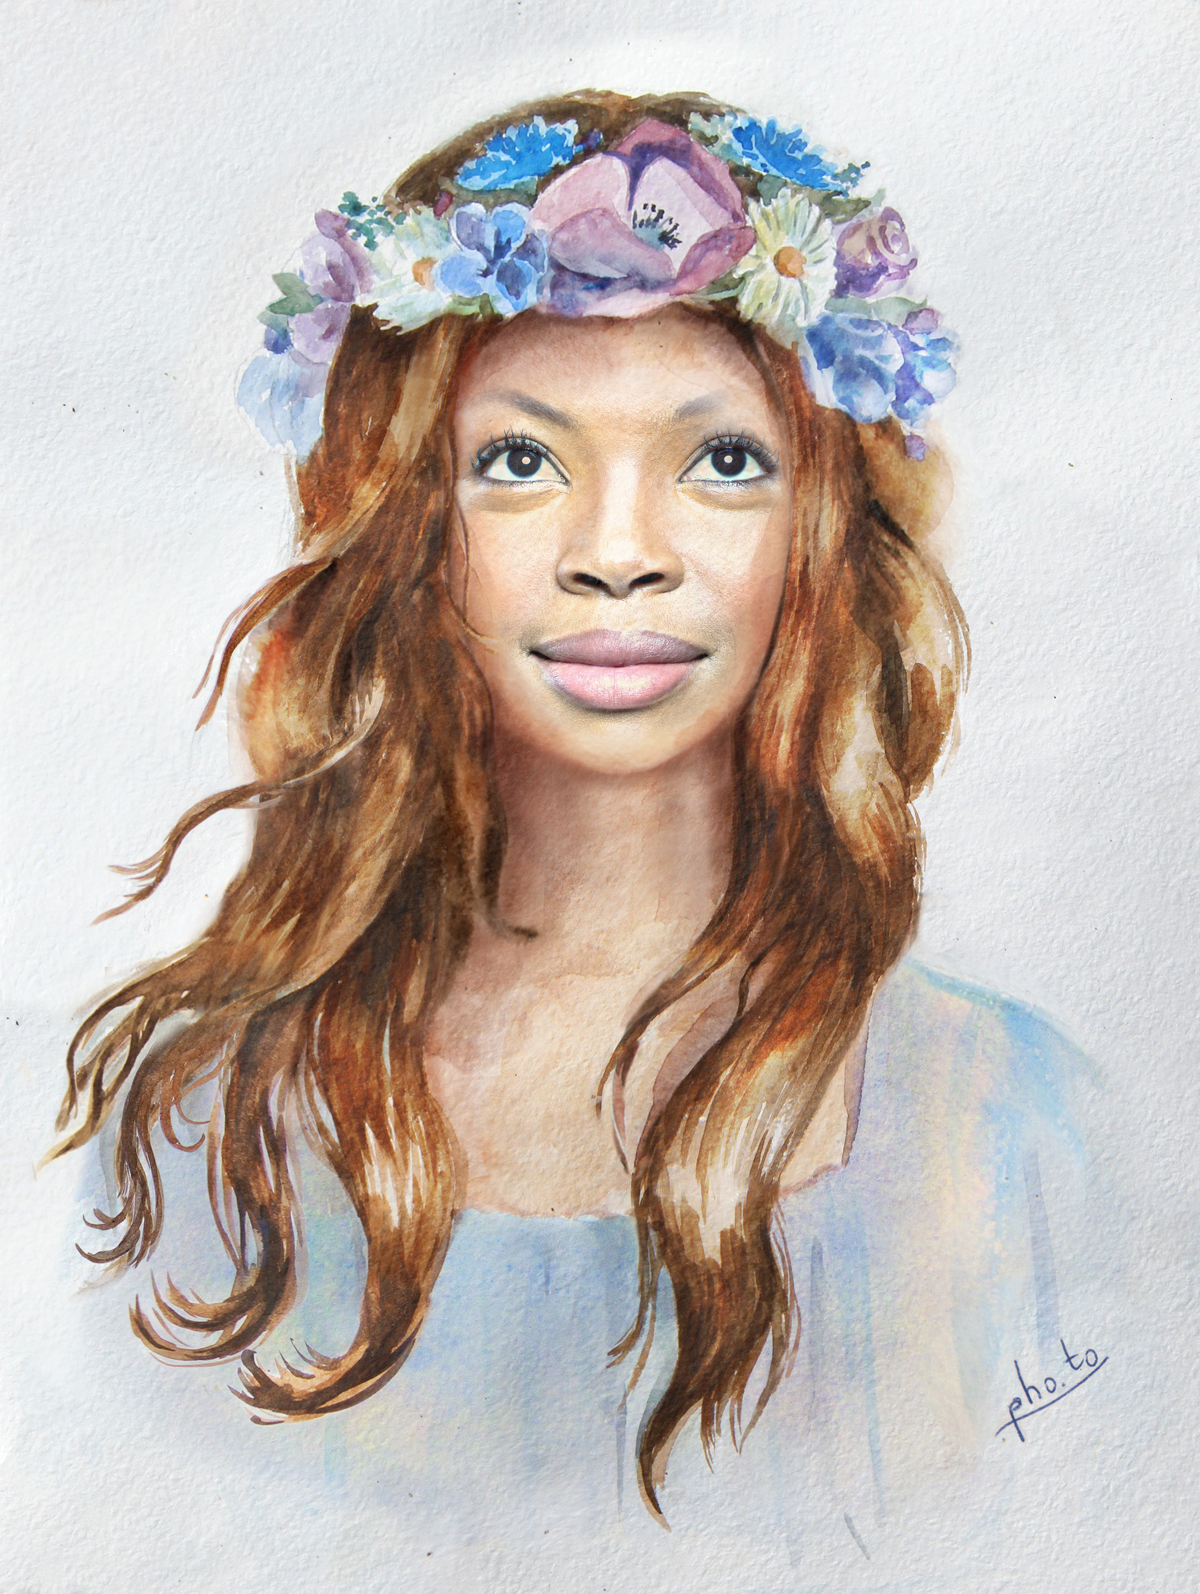 Lady's face is put on a watercolor body with a floral head crown